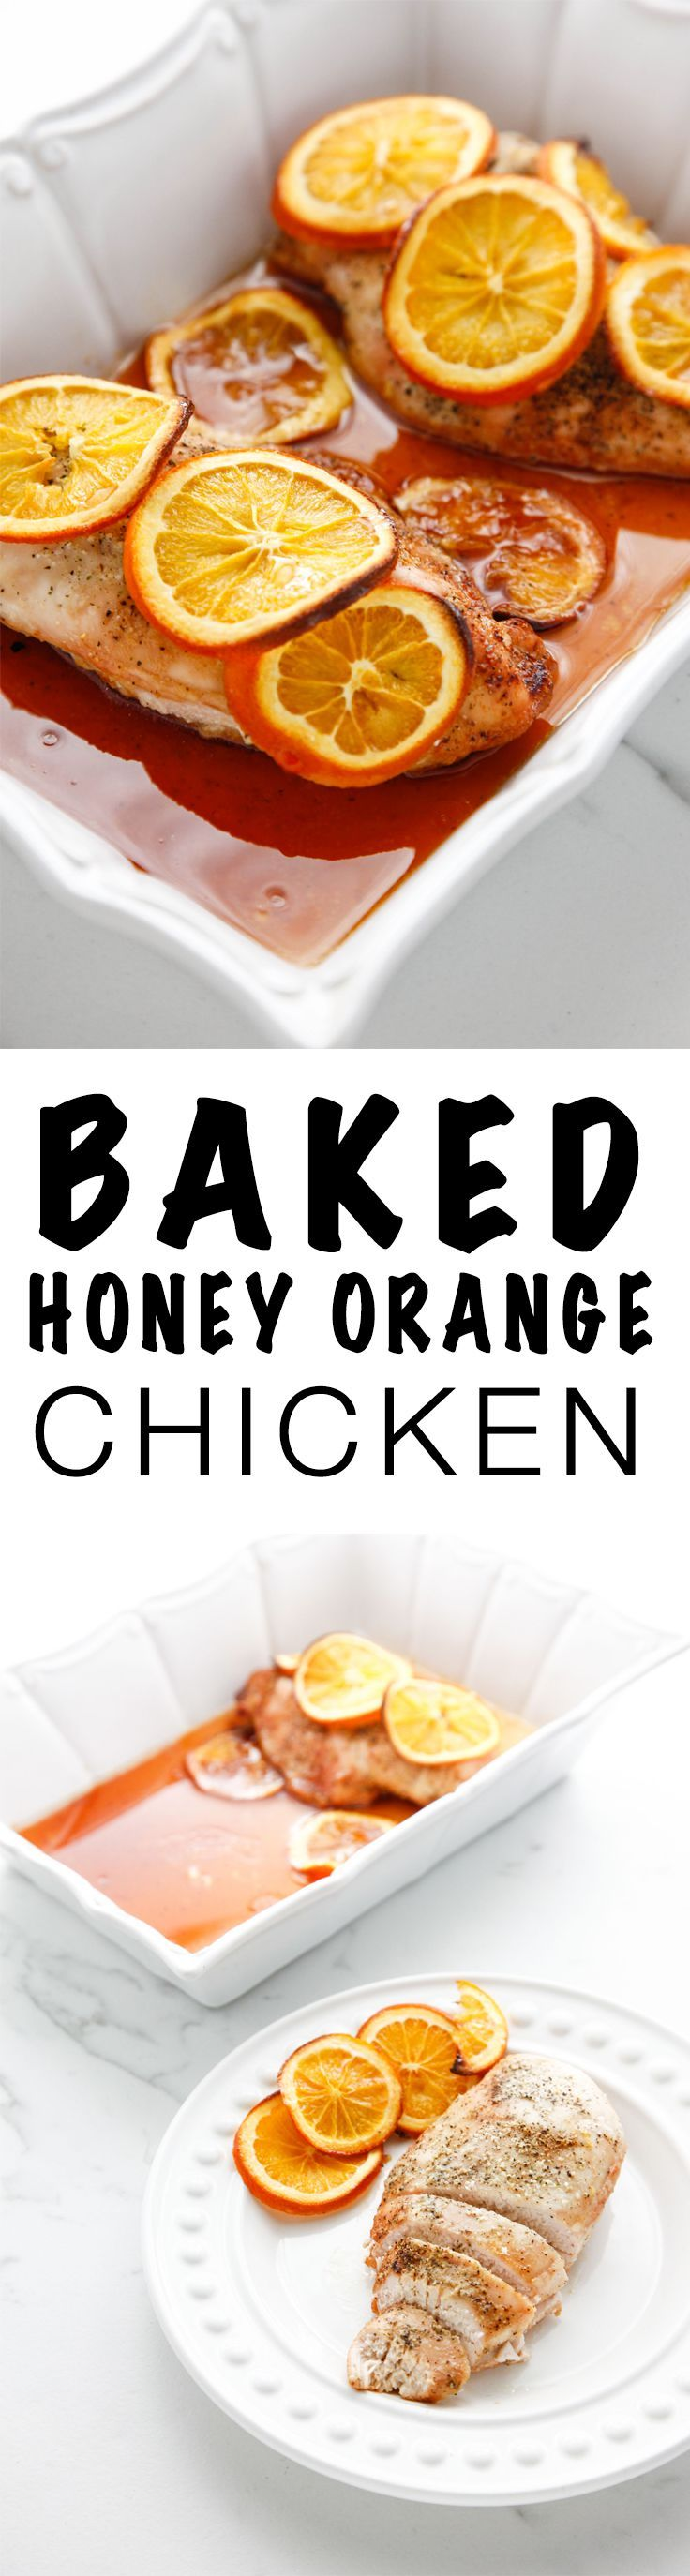 Need to make a classic meal new and exciting? This Baked Honey Orange Chicken recipe is both delicious and an easy dinner via @thebrooklyncook